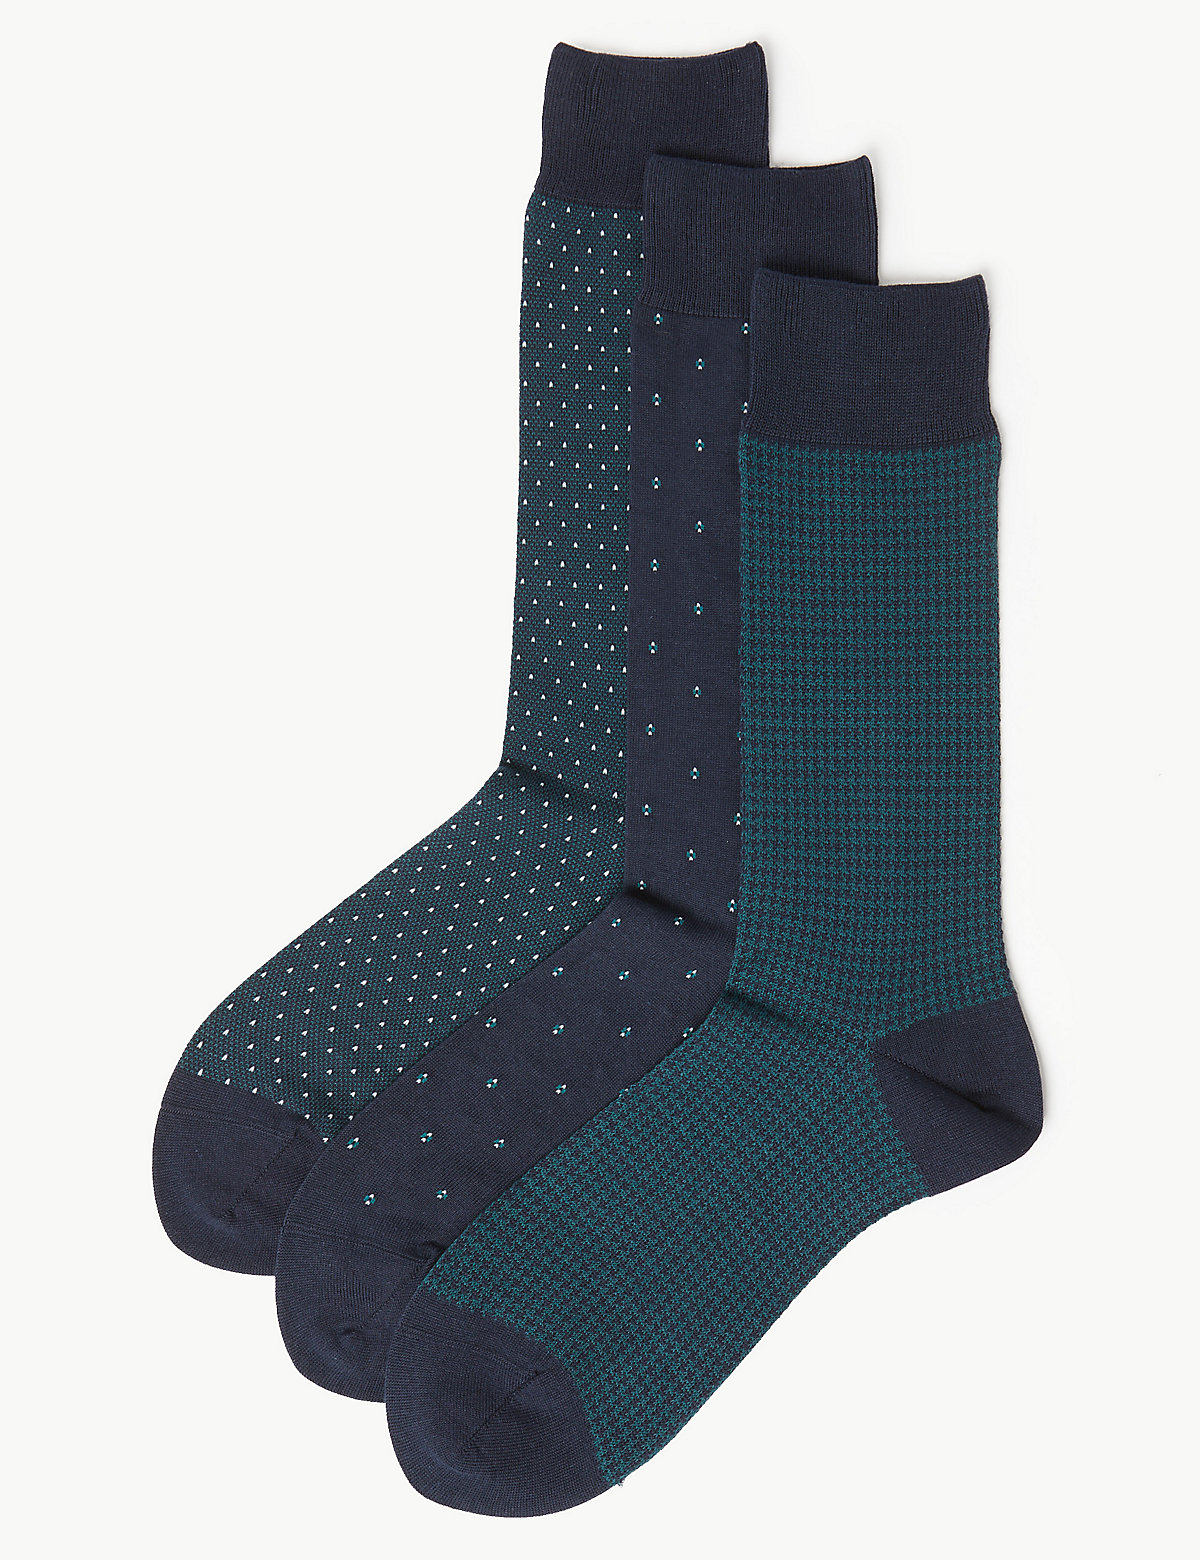 M&S Collection Luxury 3 Pack Luxury Cotton Assorted Socks